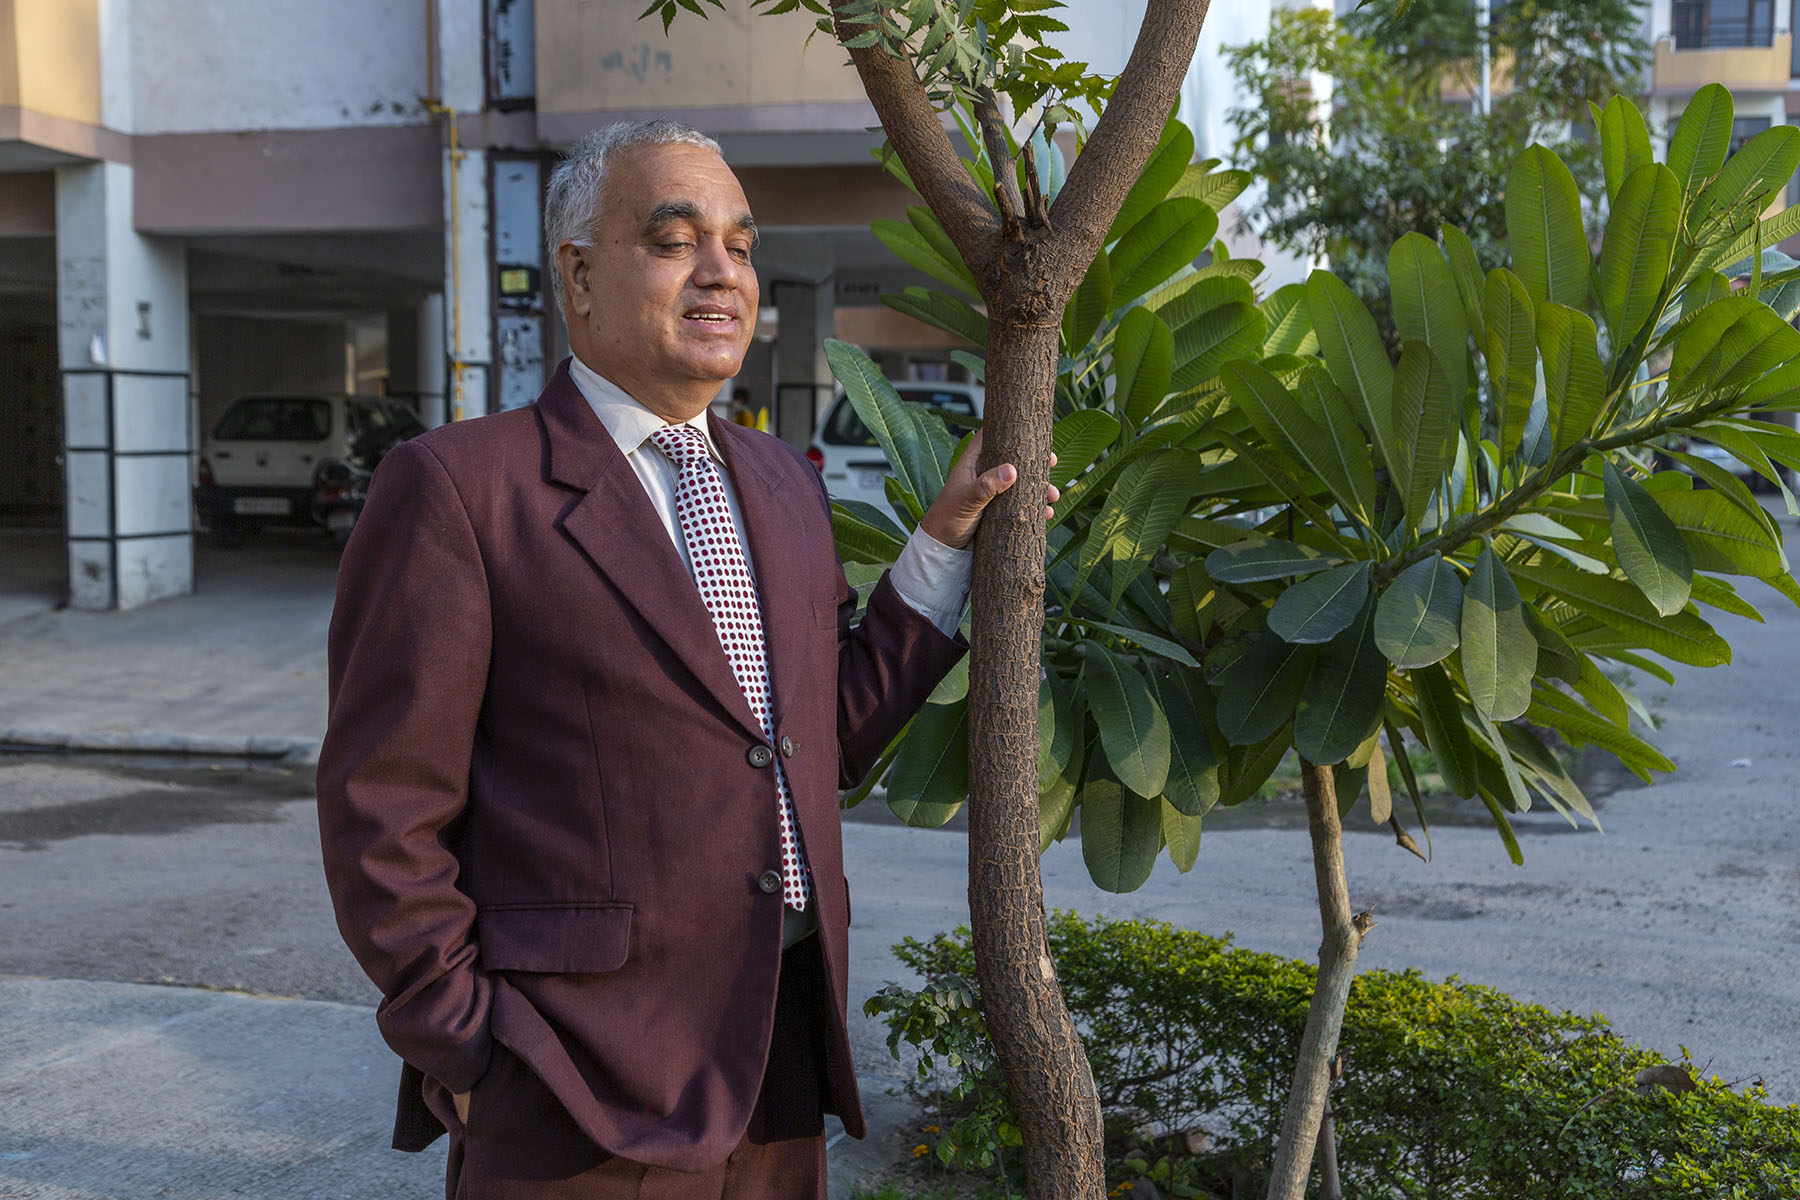 Jayara in a brown suit standing with his left hand holding the slender trunk of a neem tree, next to which a plumeria sapling displays its lush green leaves